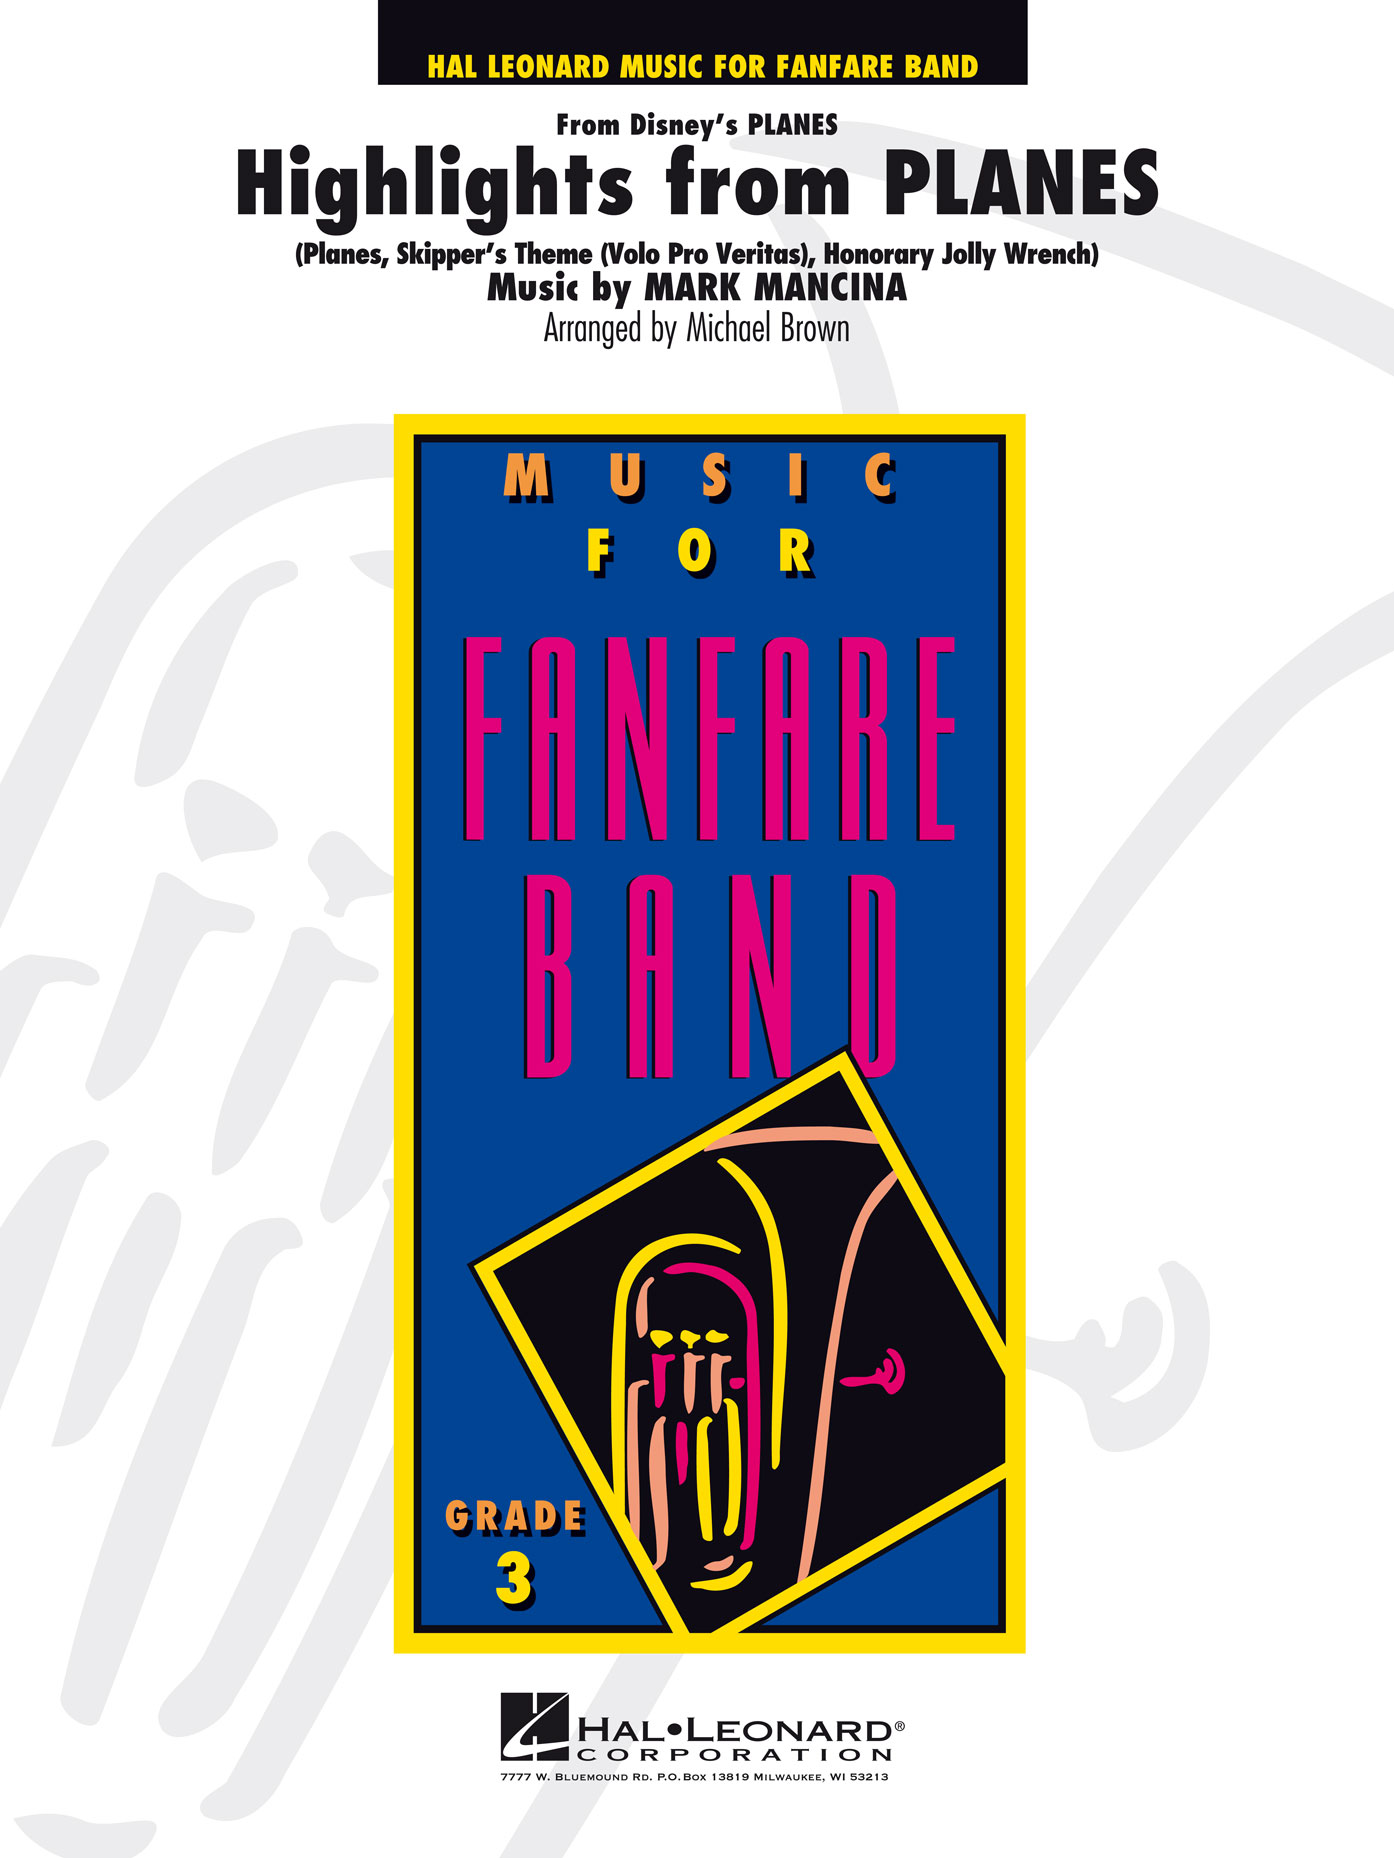 Mark Mancina: Highlights from Planes: Fanfare Band: Score